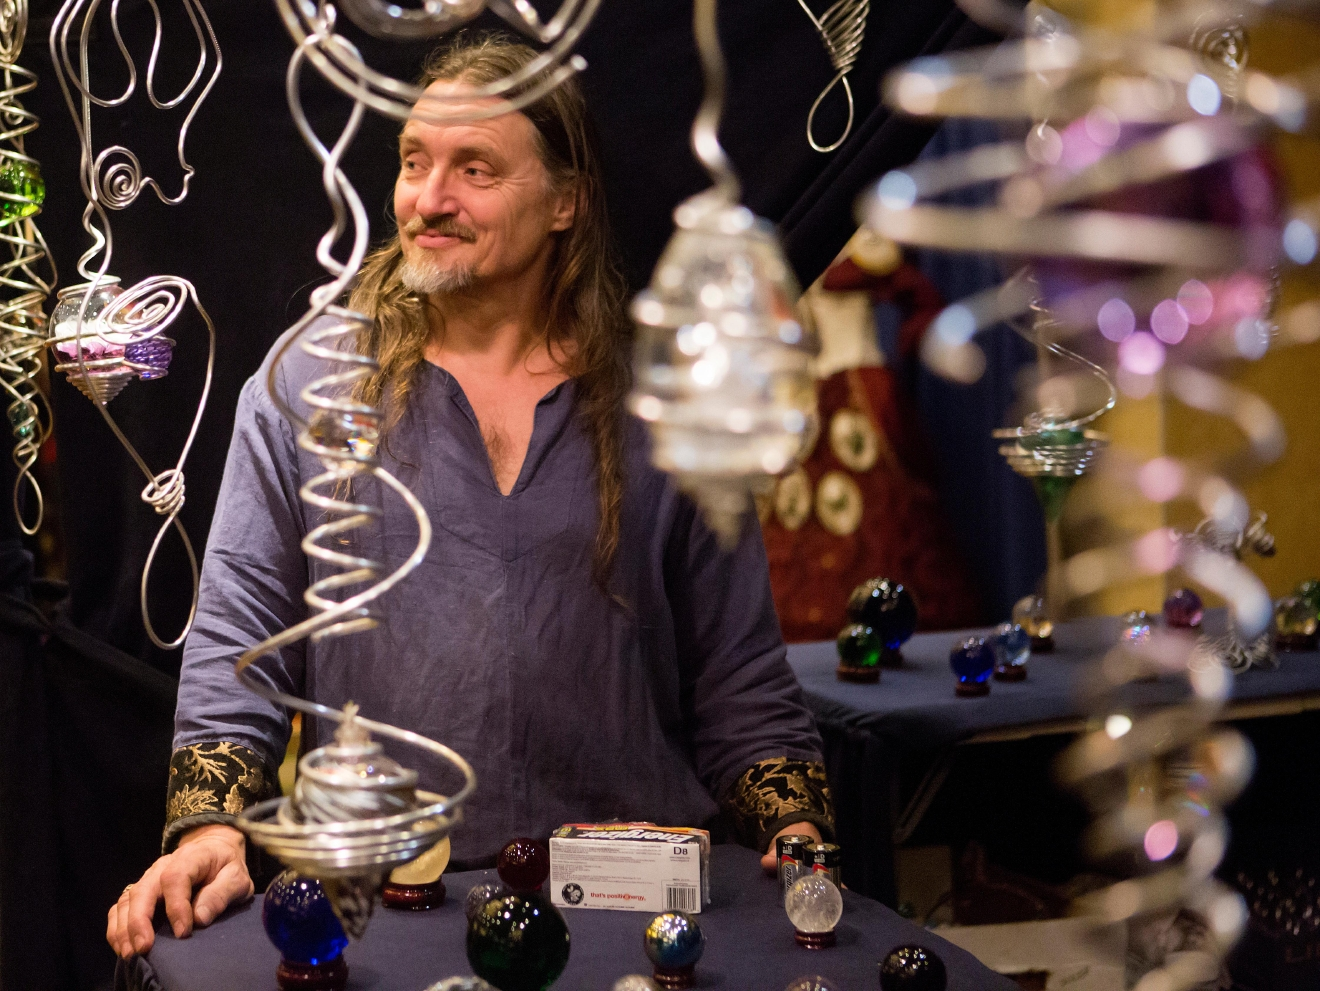 Spiral Alchemist Amaru stands behind his artwork in his booth at Mythicworlds Convention and Masquerades. (Sy Bean / Seattle Refined)